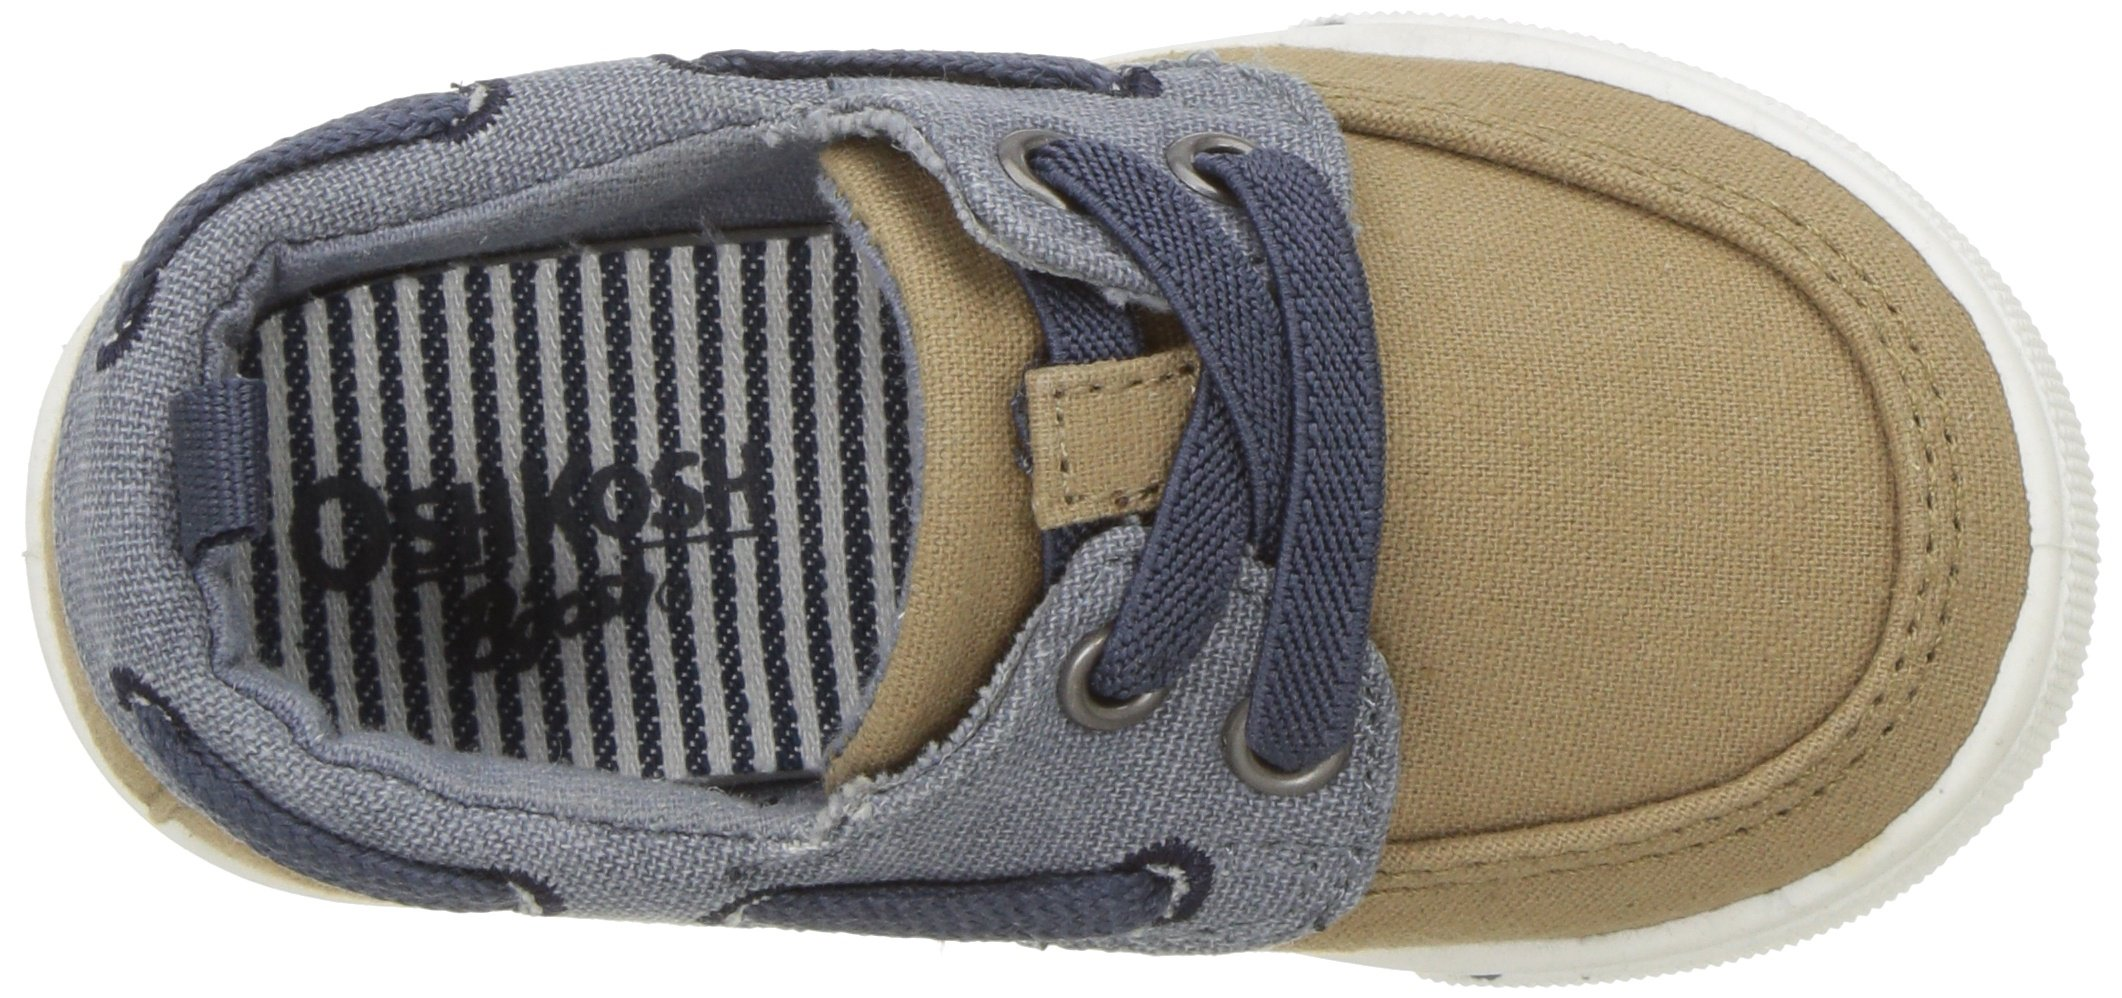 OshKosh B'Gosh Albie Boy's Boat Shoe, Khaki, 12 M US Little Kid by OshKosh B'Gosh (Image #8)